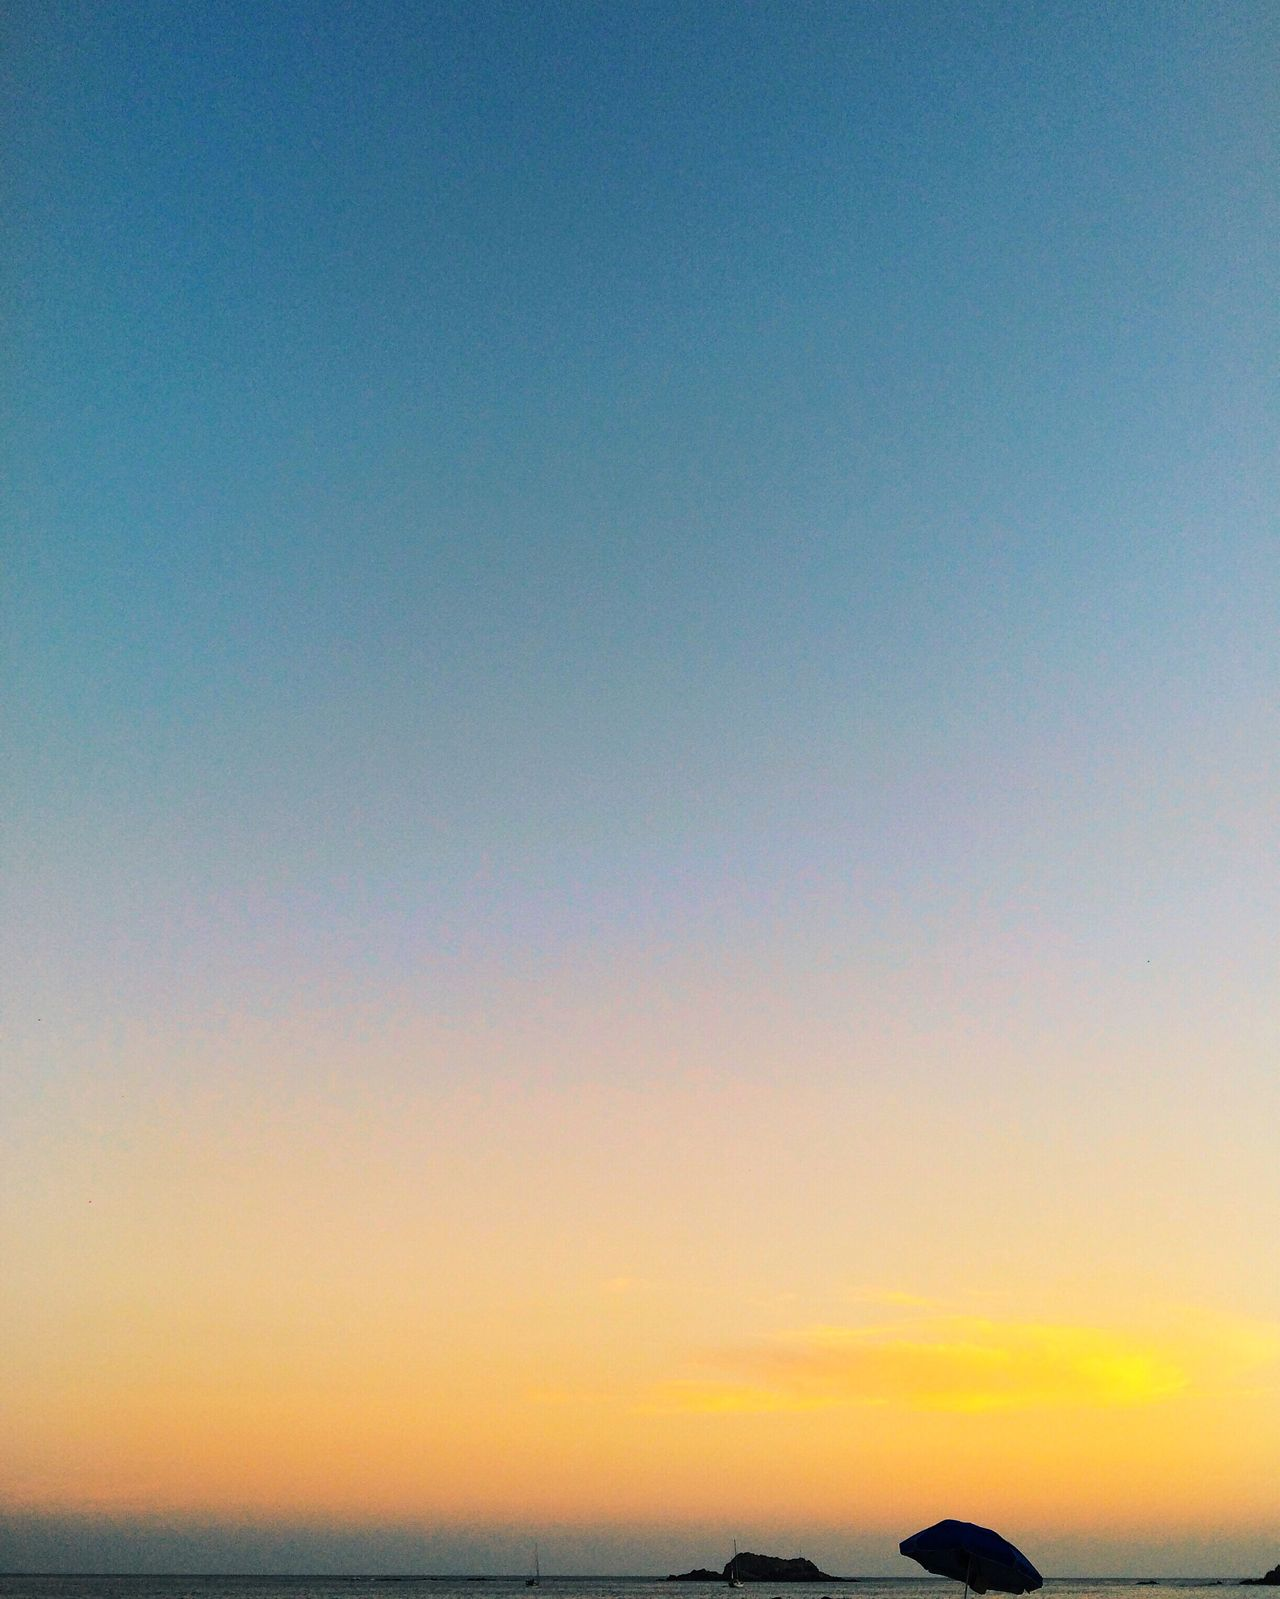 Beauty In Nature Blue Clear Sky Dusk Horizon Over Water Nature Sea Silhouette Sky Sunset Tranquil Scene Tranquility Water Waterfront